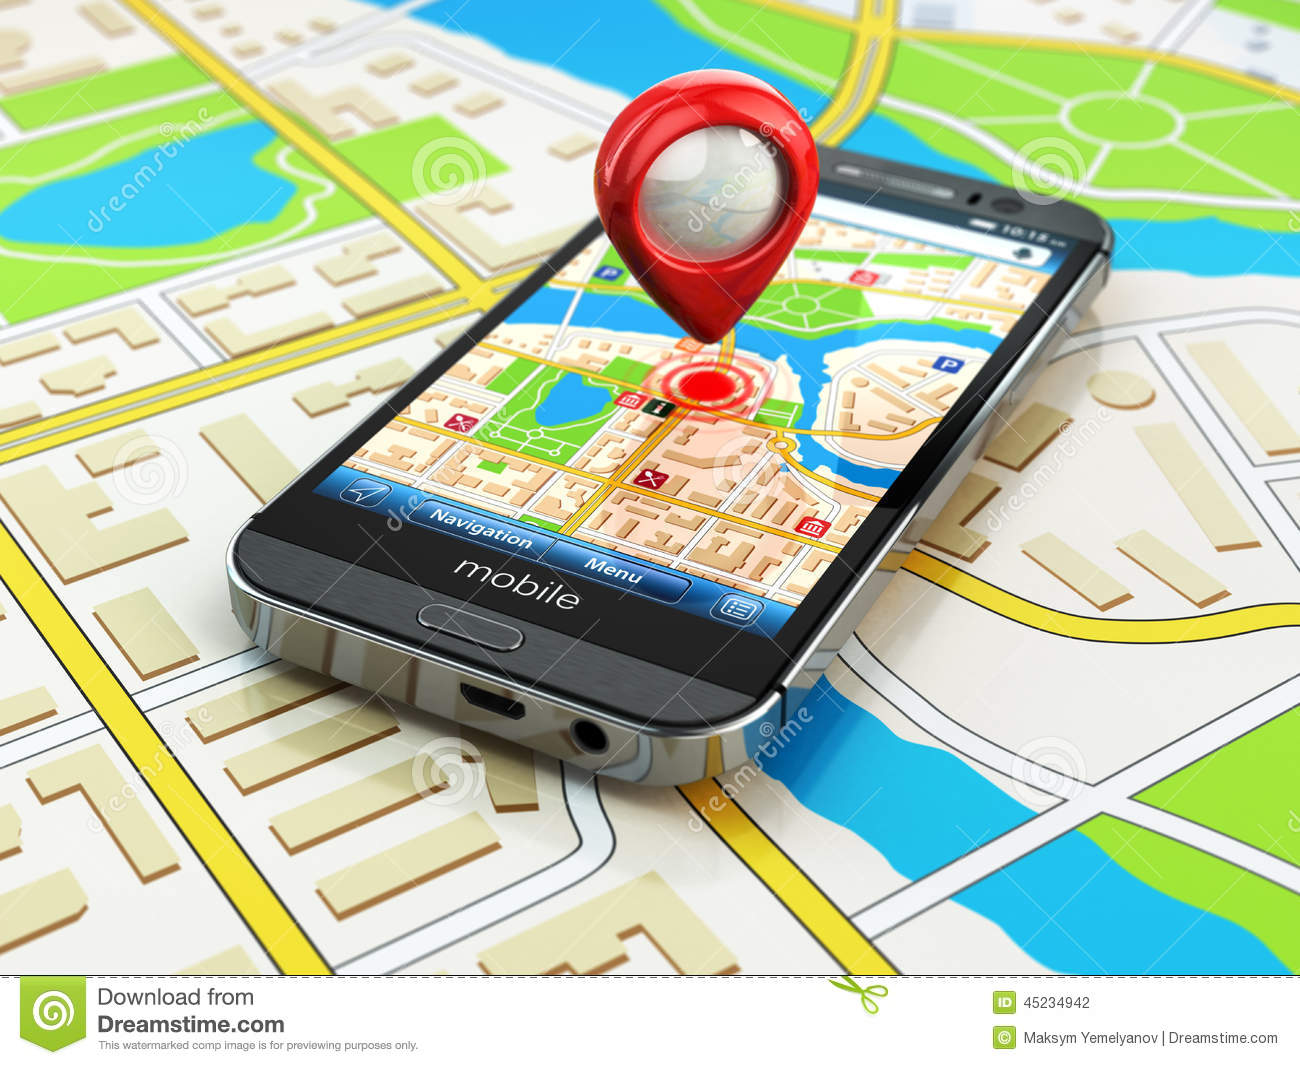 how to download map on phone